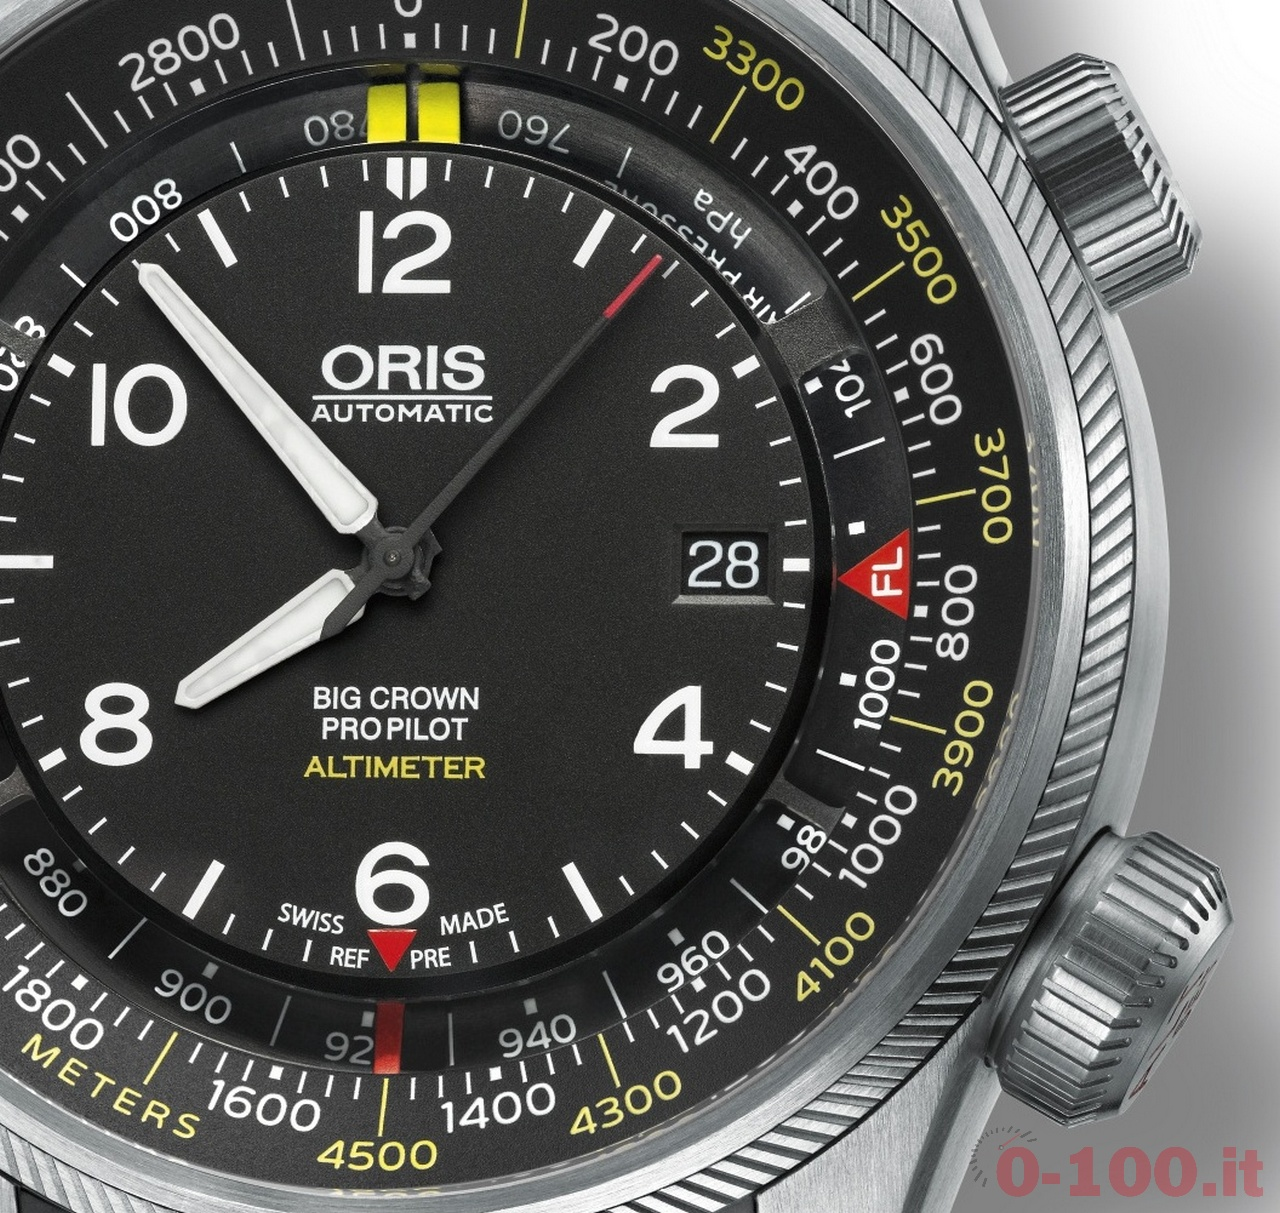 01 733 7705 4164-07 8 23 19_sps.tif Oris Big Crown ProPilot Altimeter